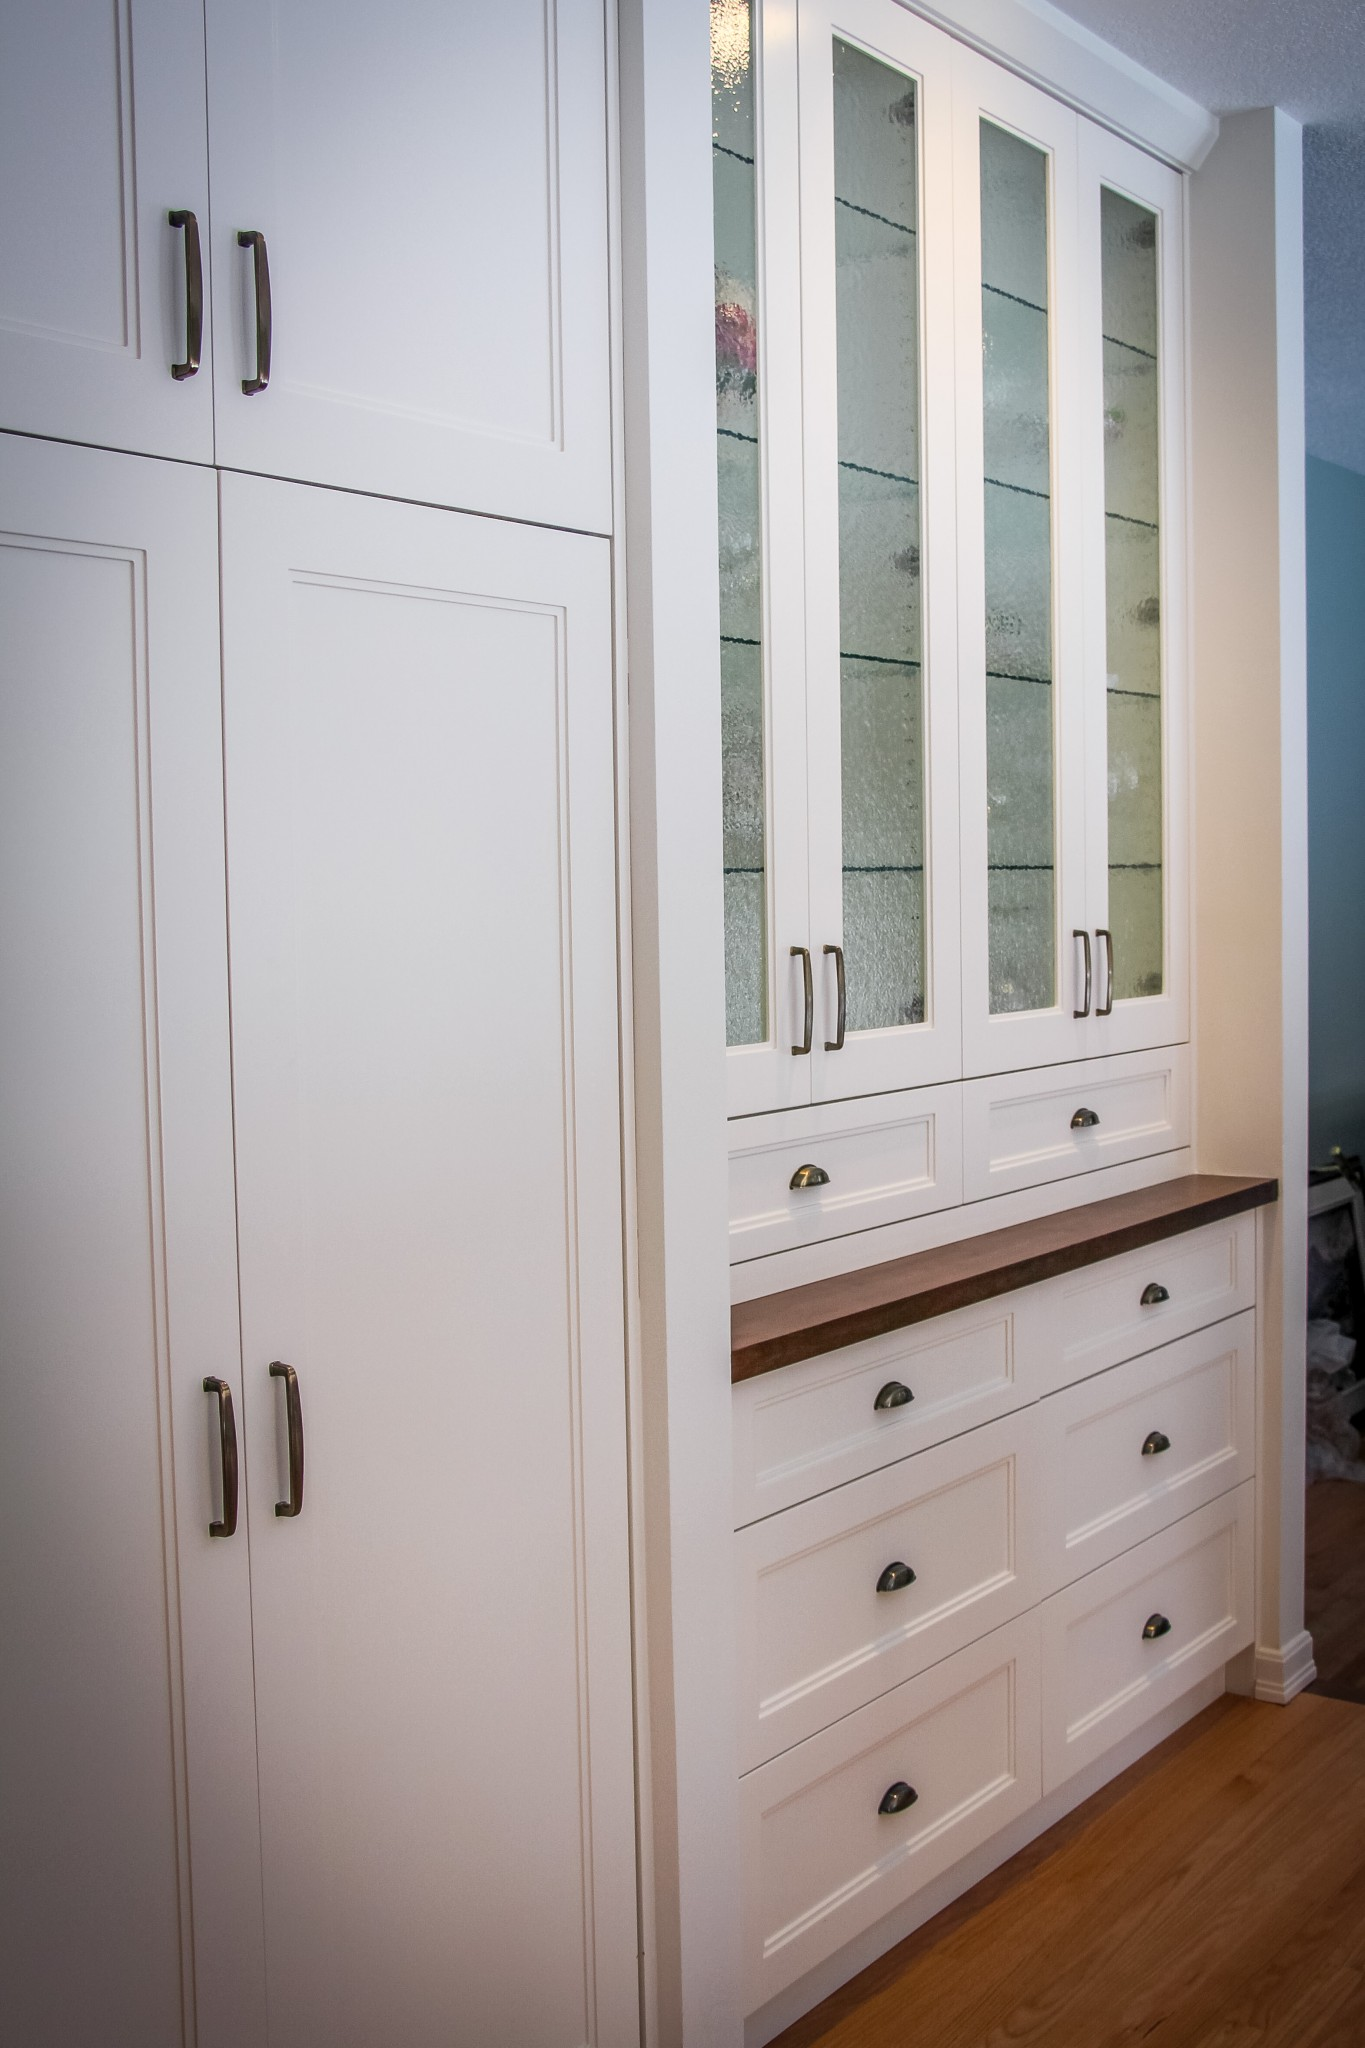 Traditional China Storage In A Built In Full Height Cabinet With Textured  Glass Doors.